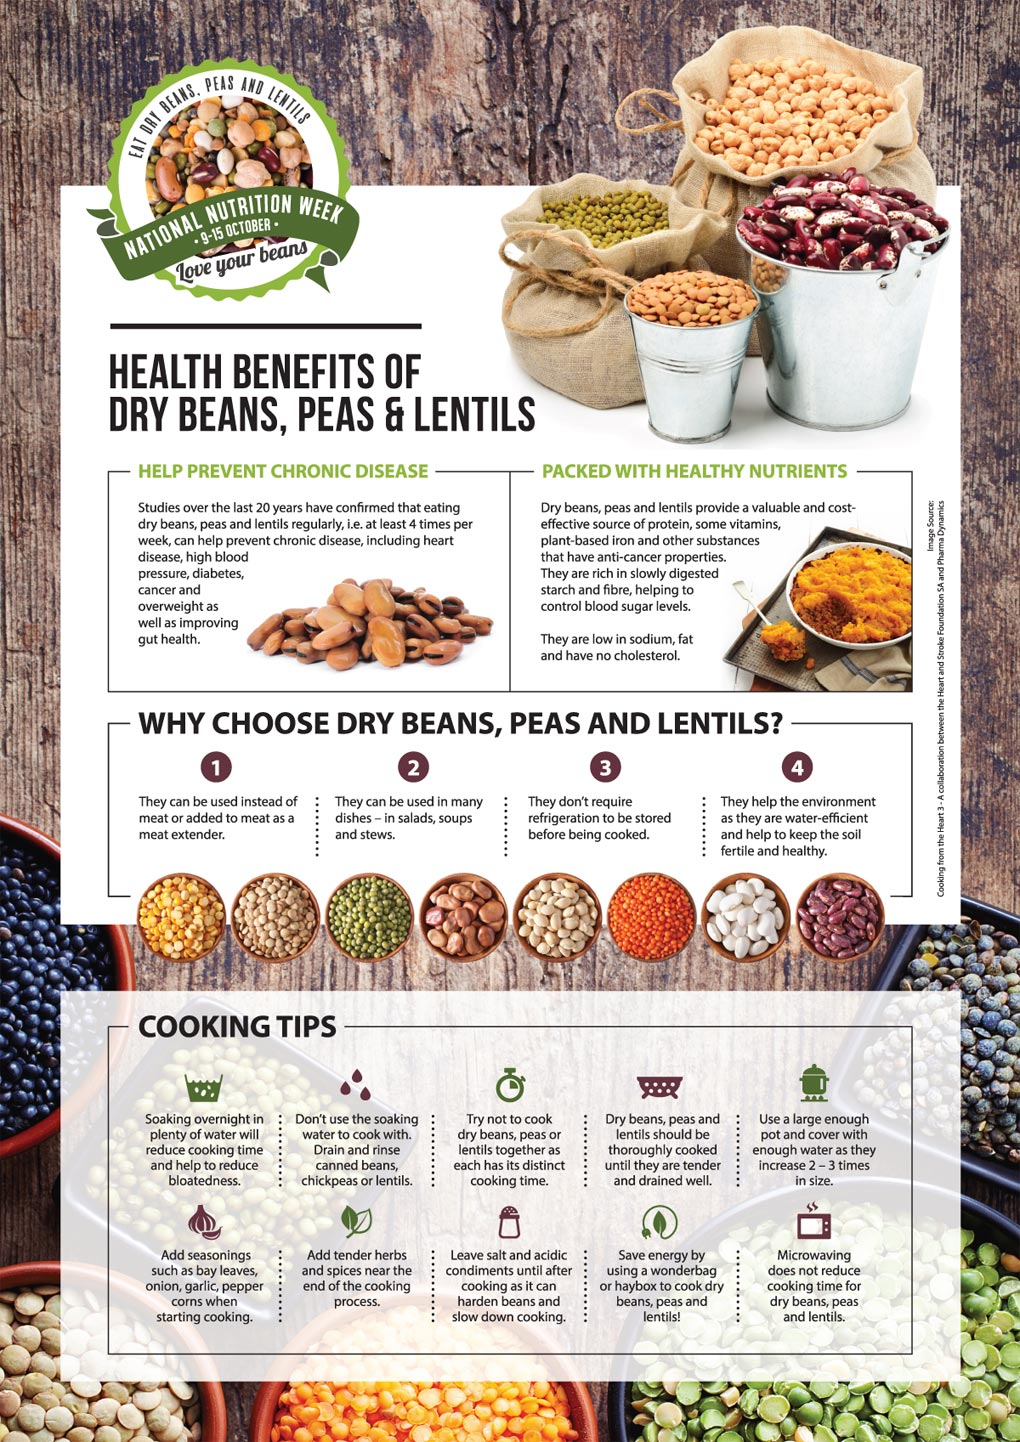 Health benefits of dry beans, peas and lentils